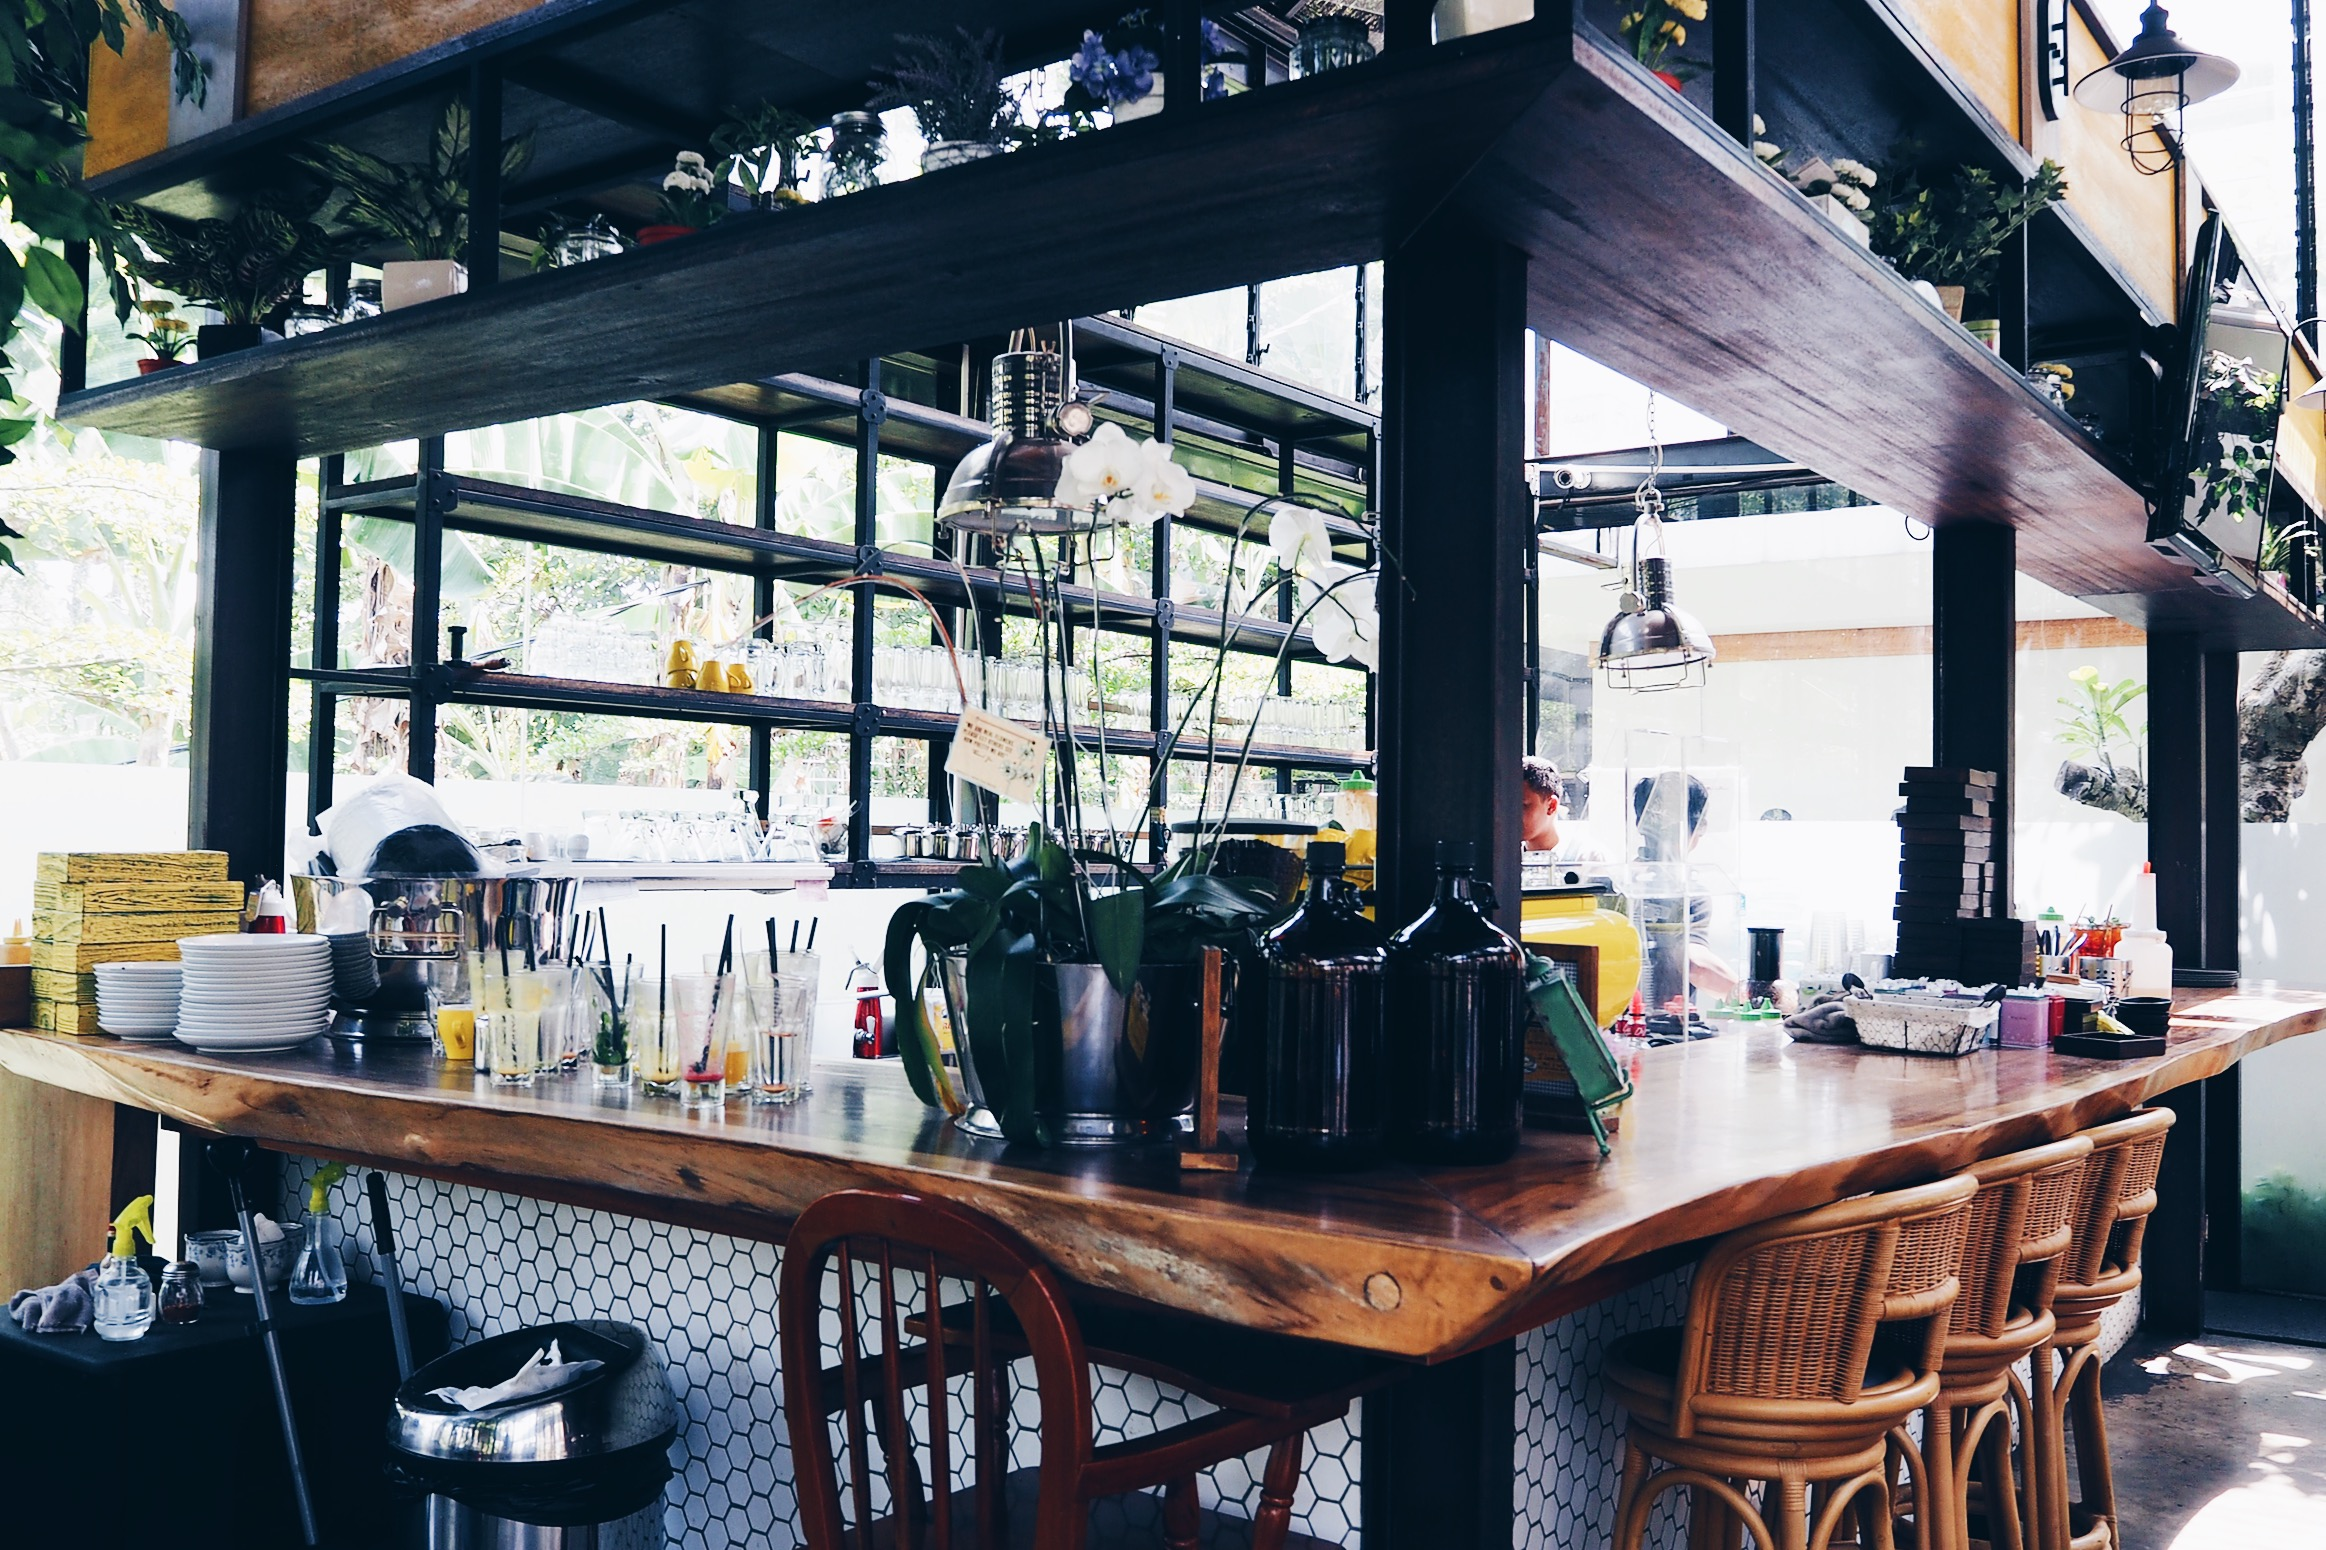 Vintage Café Miss Bee Providore Bandung Vintage Cafe Feels Like Home Part 1